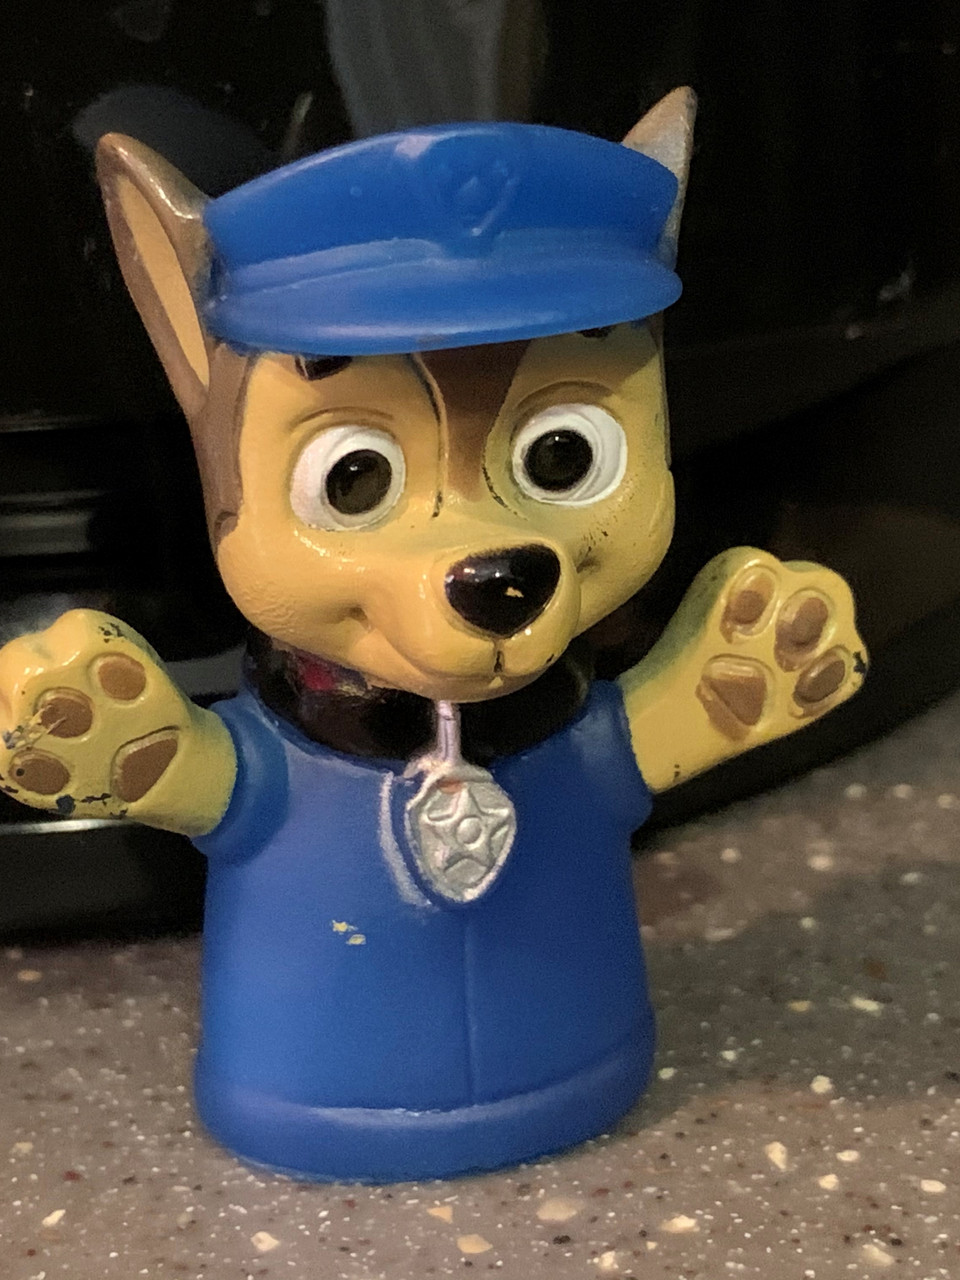 Popular Cartoon Paw Patrol Character Chase Facing Pressure From Activists Weyi